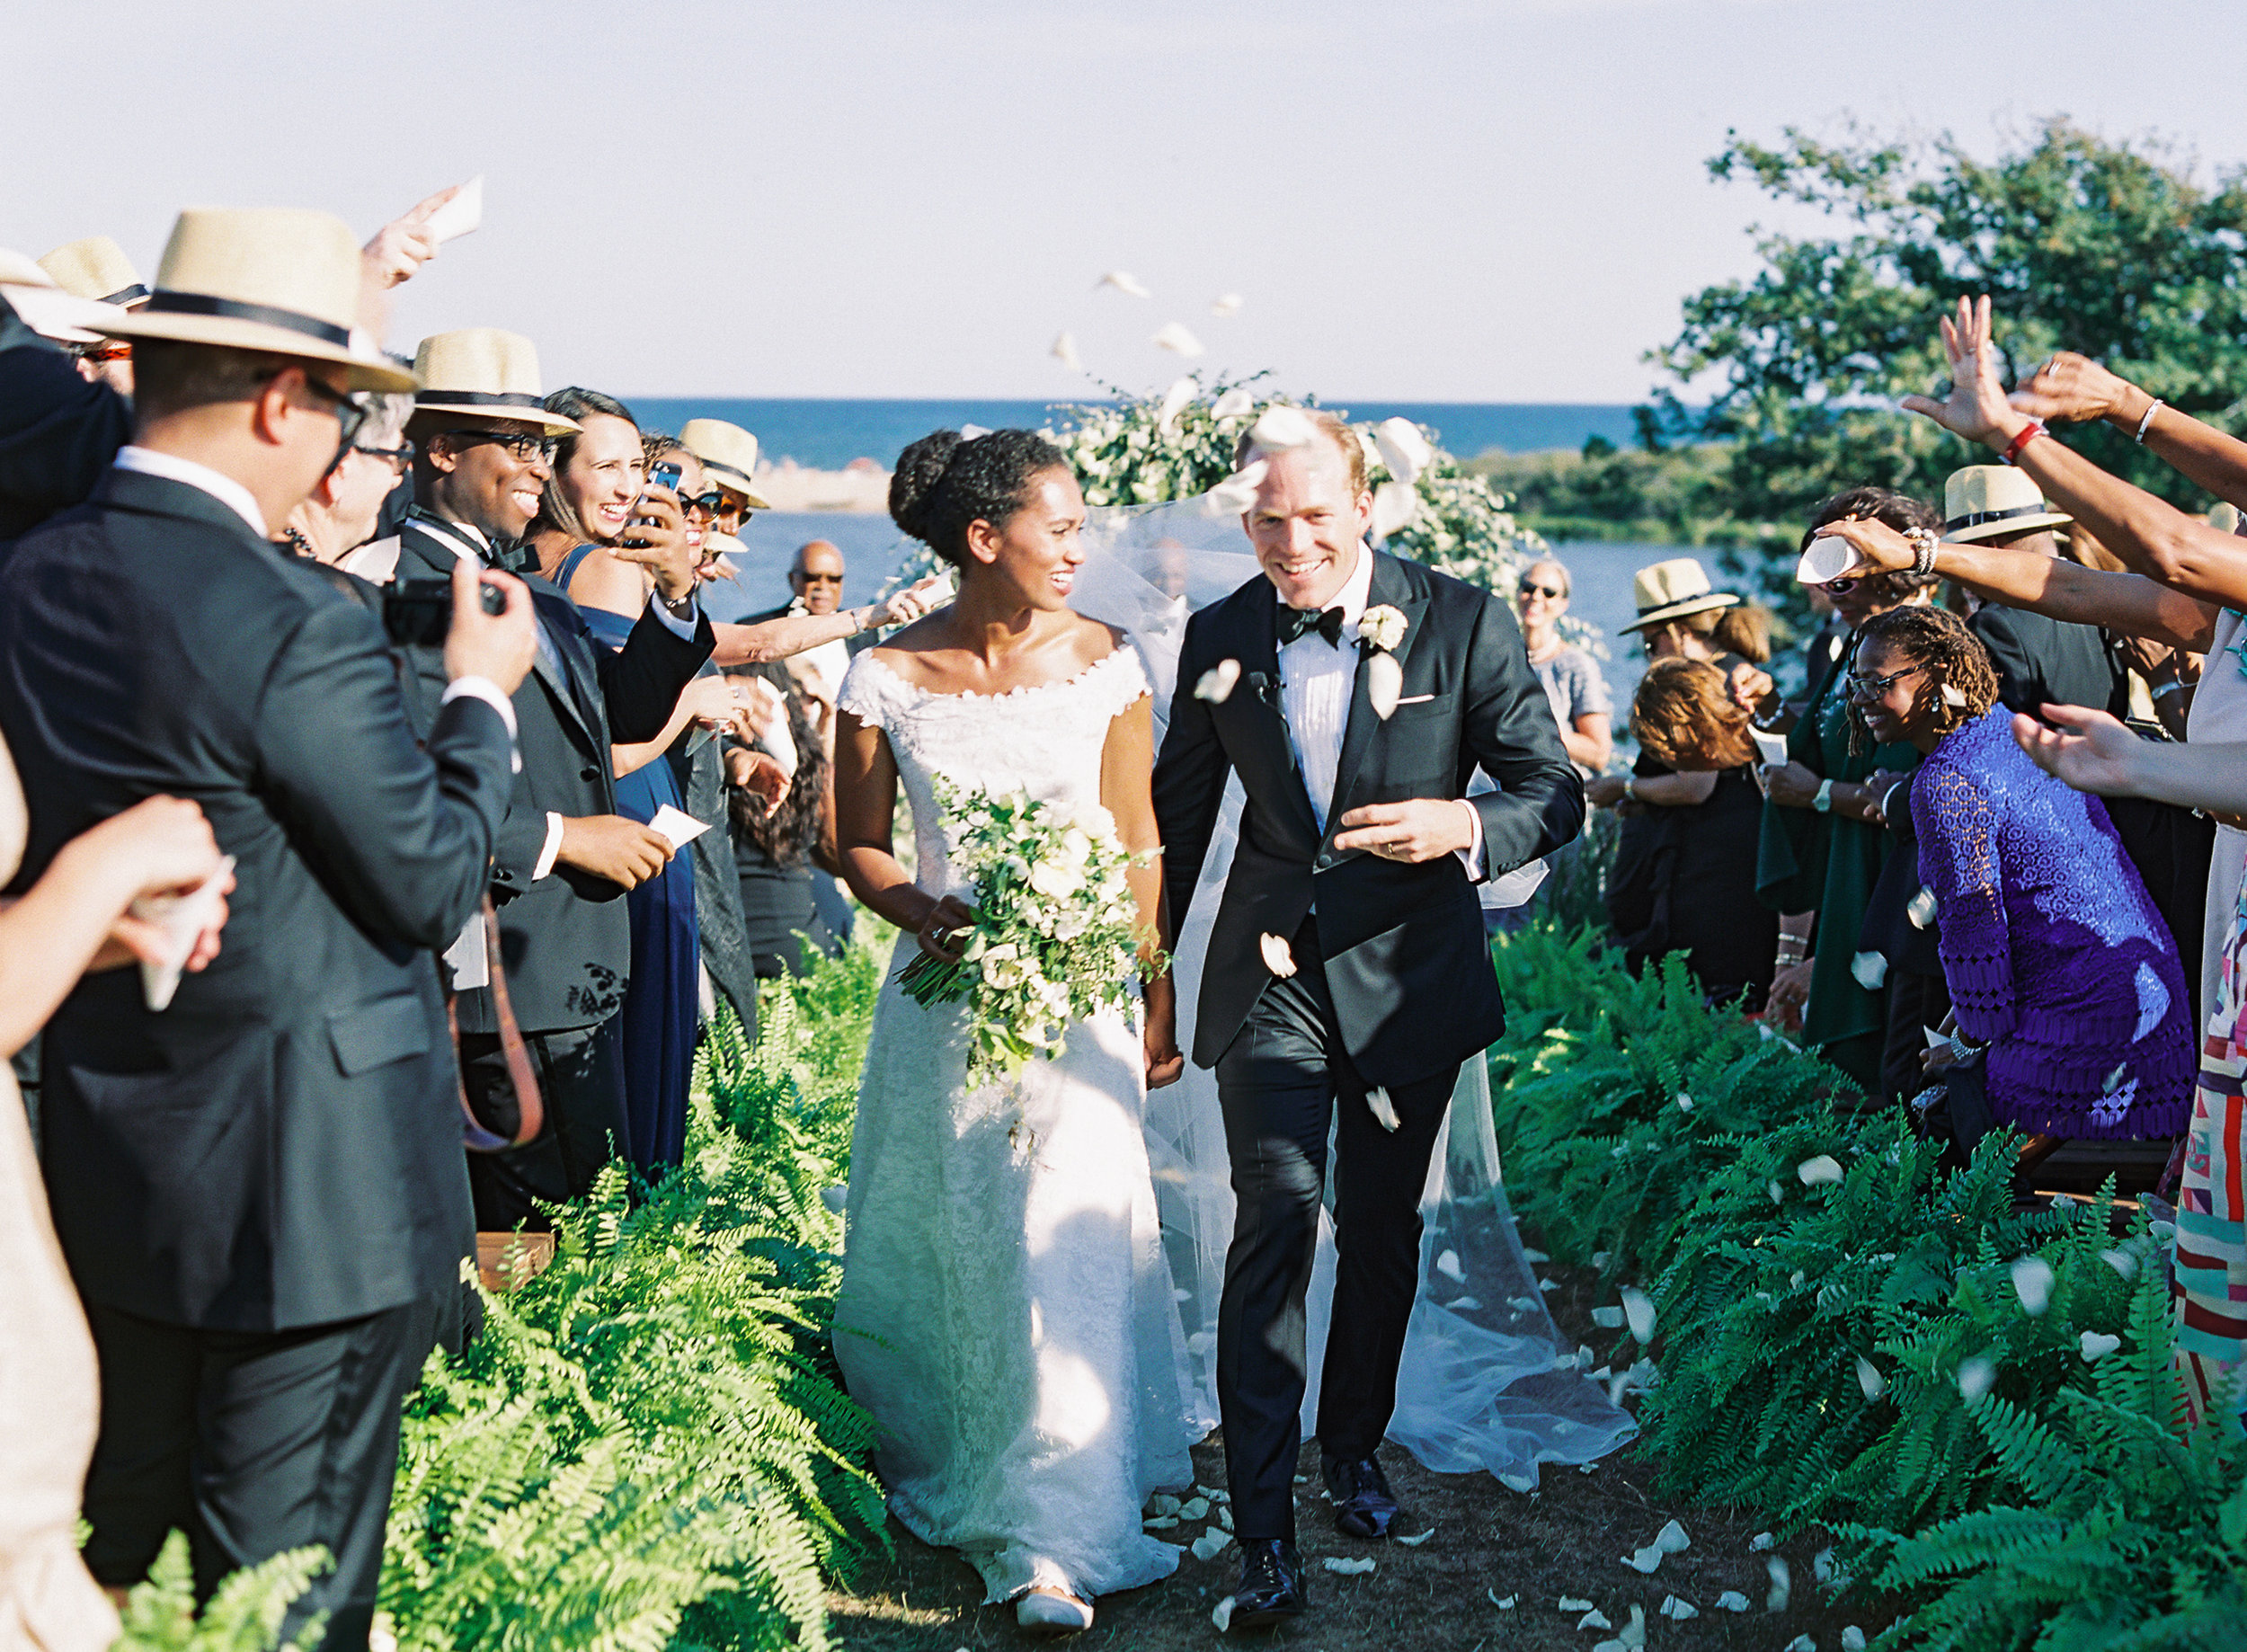 Marthas-Vineyard-Wedding-on-Martha-Stewart-641.jpg